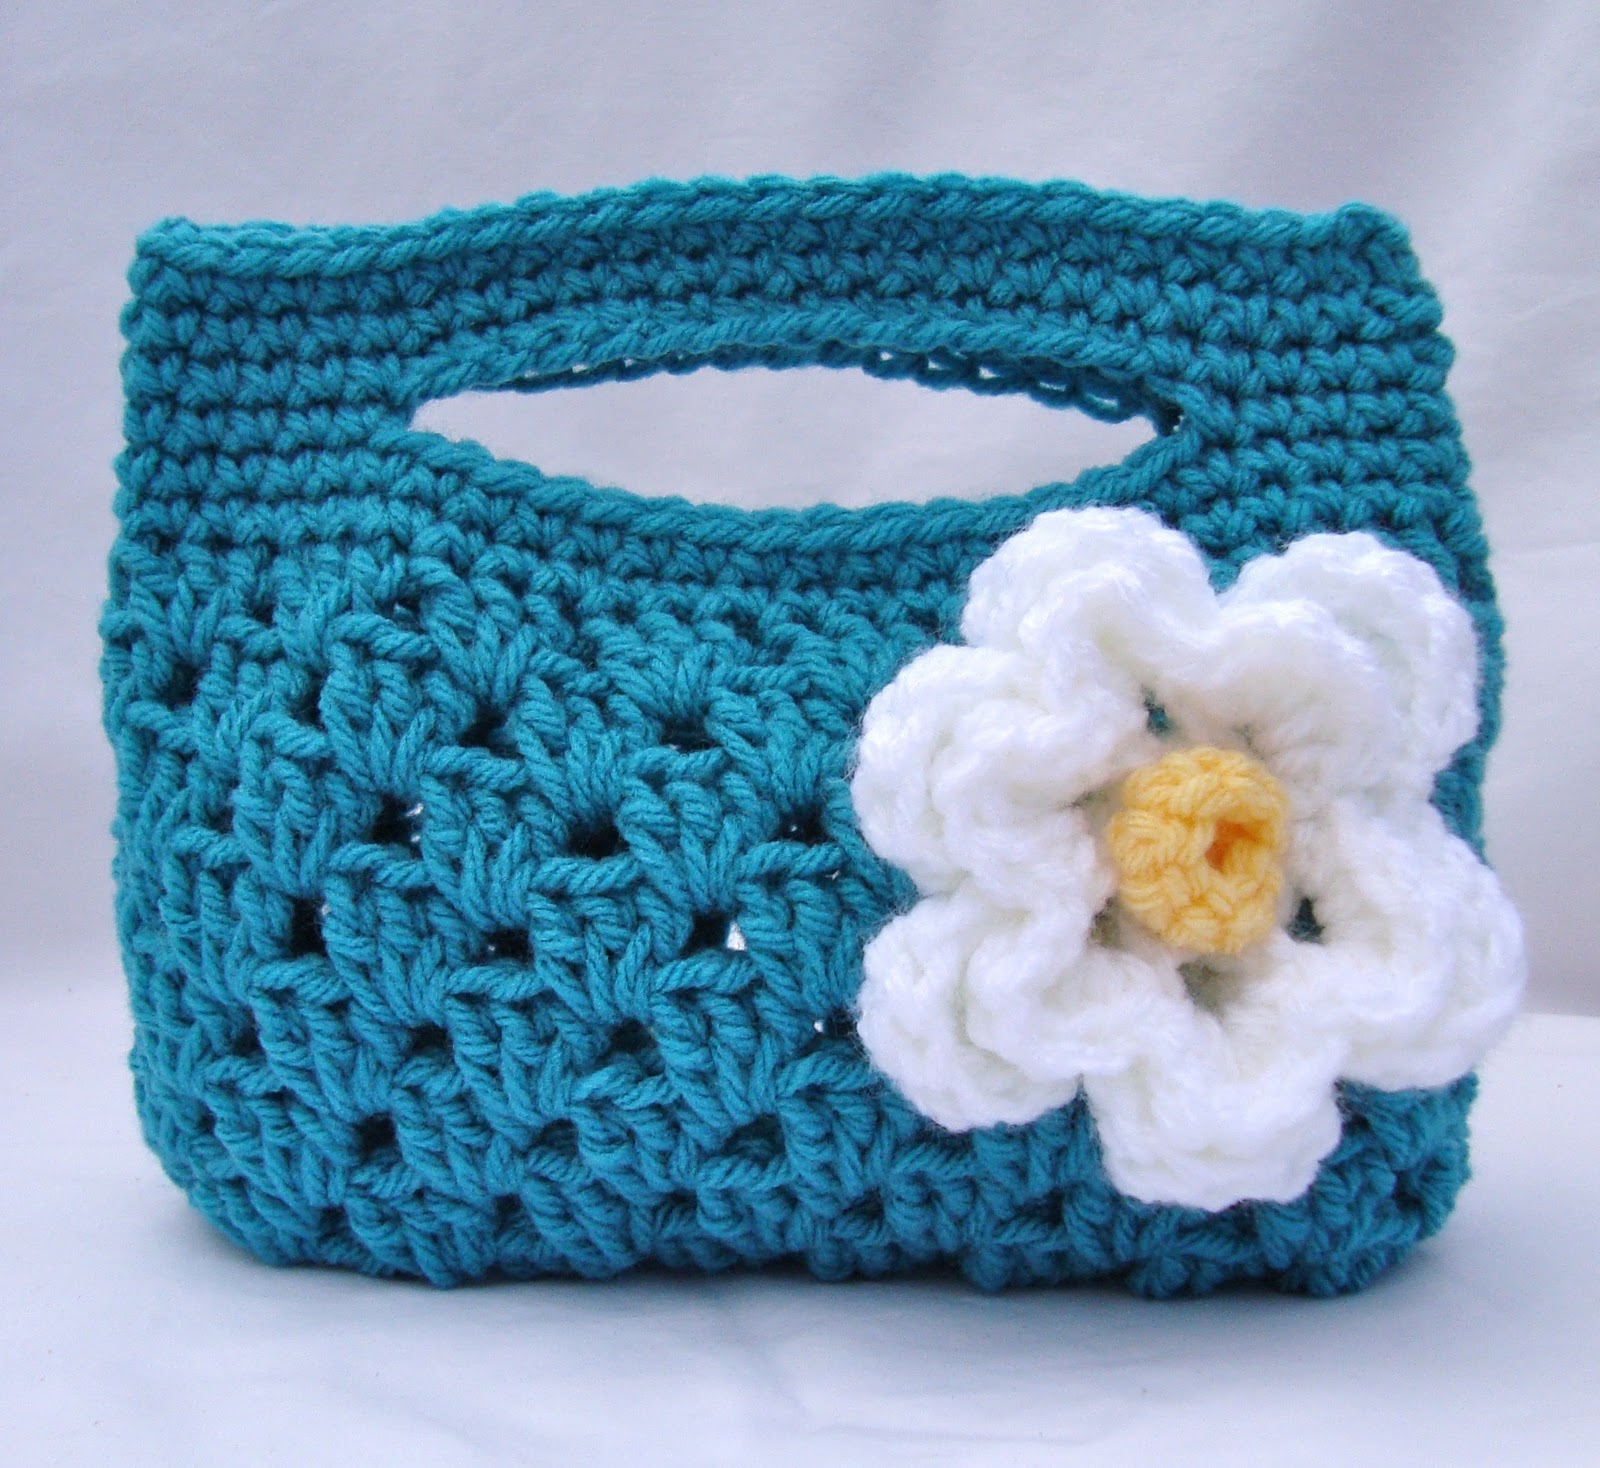 ... written crochet pattern tangled happy s granny stripe boutique bag